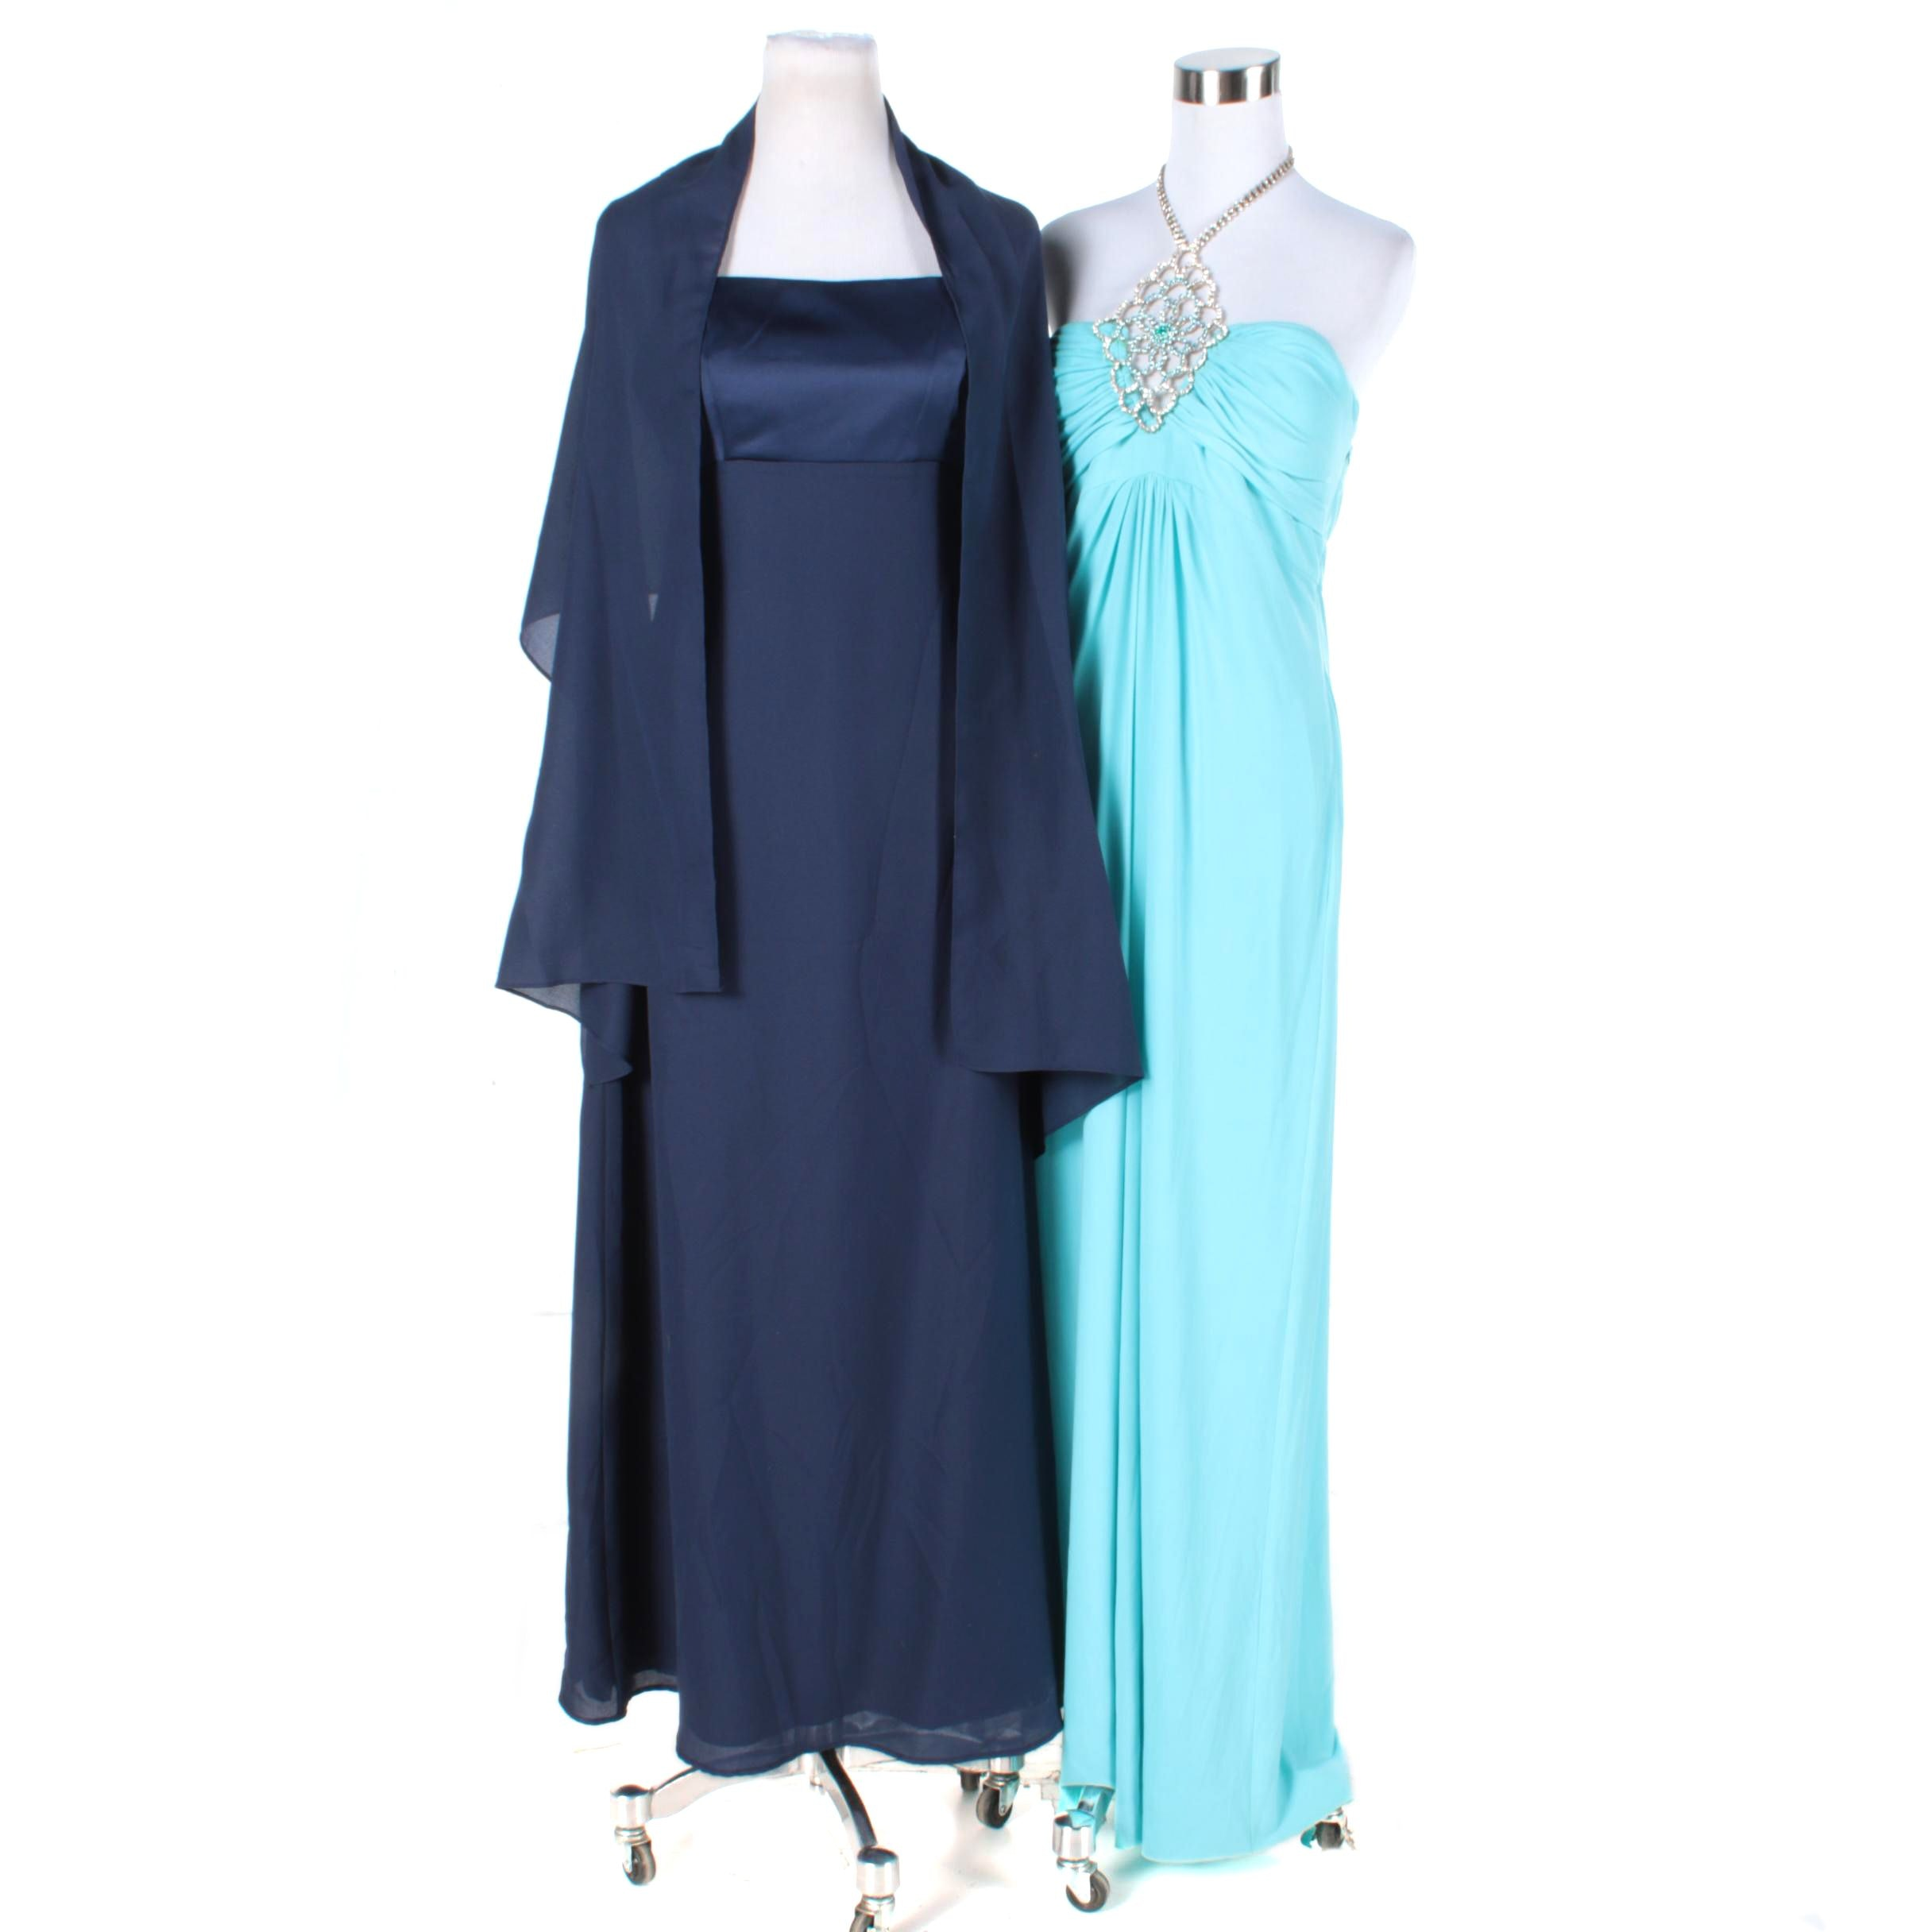 Women's Sleeveless Evening Dresses, Including Mary L Couture